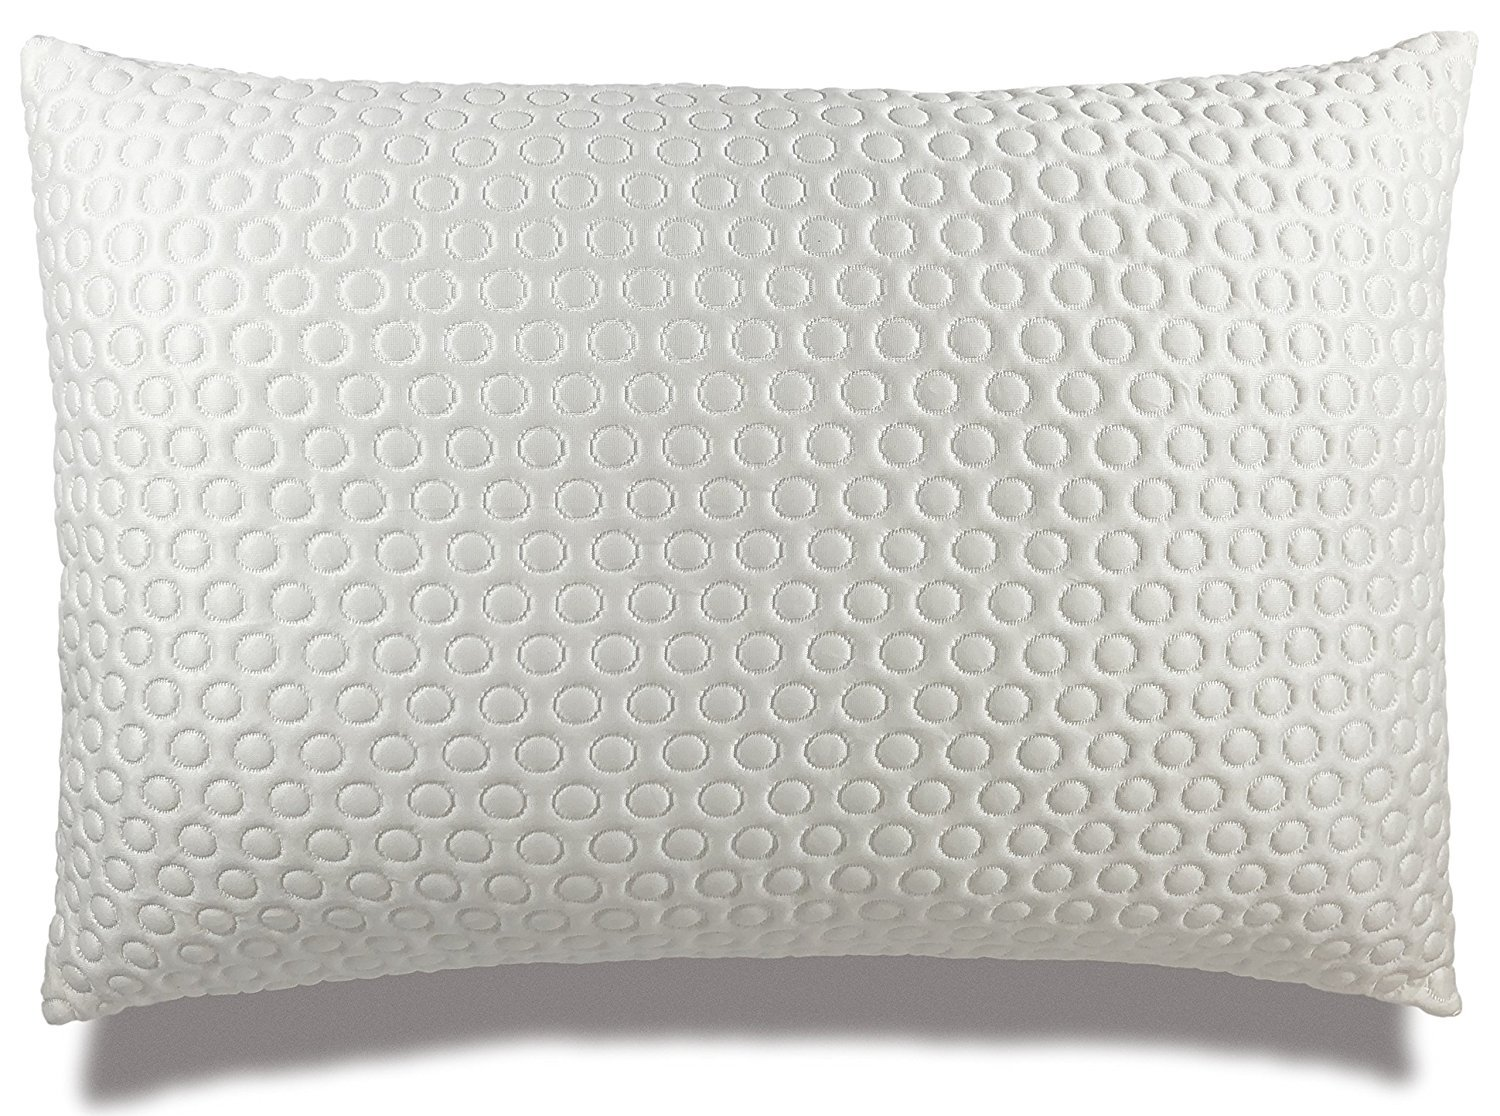 Xtreme Comforts Luxury Plush Gel Infused Fiber Filled Pillow for Sleeping. Adjustable Loft for ALL Sleepers With Proprietary Cool-X Cooling Cover (Queen) MADE IN THE USA